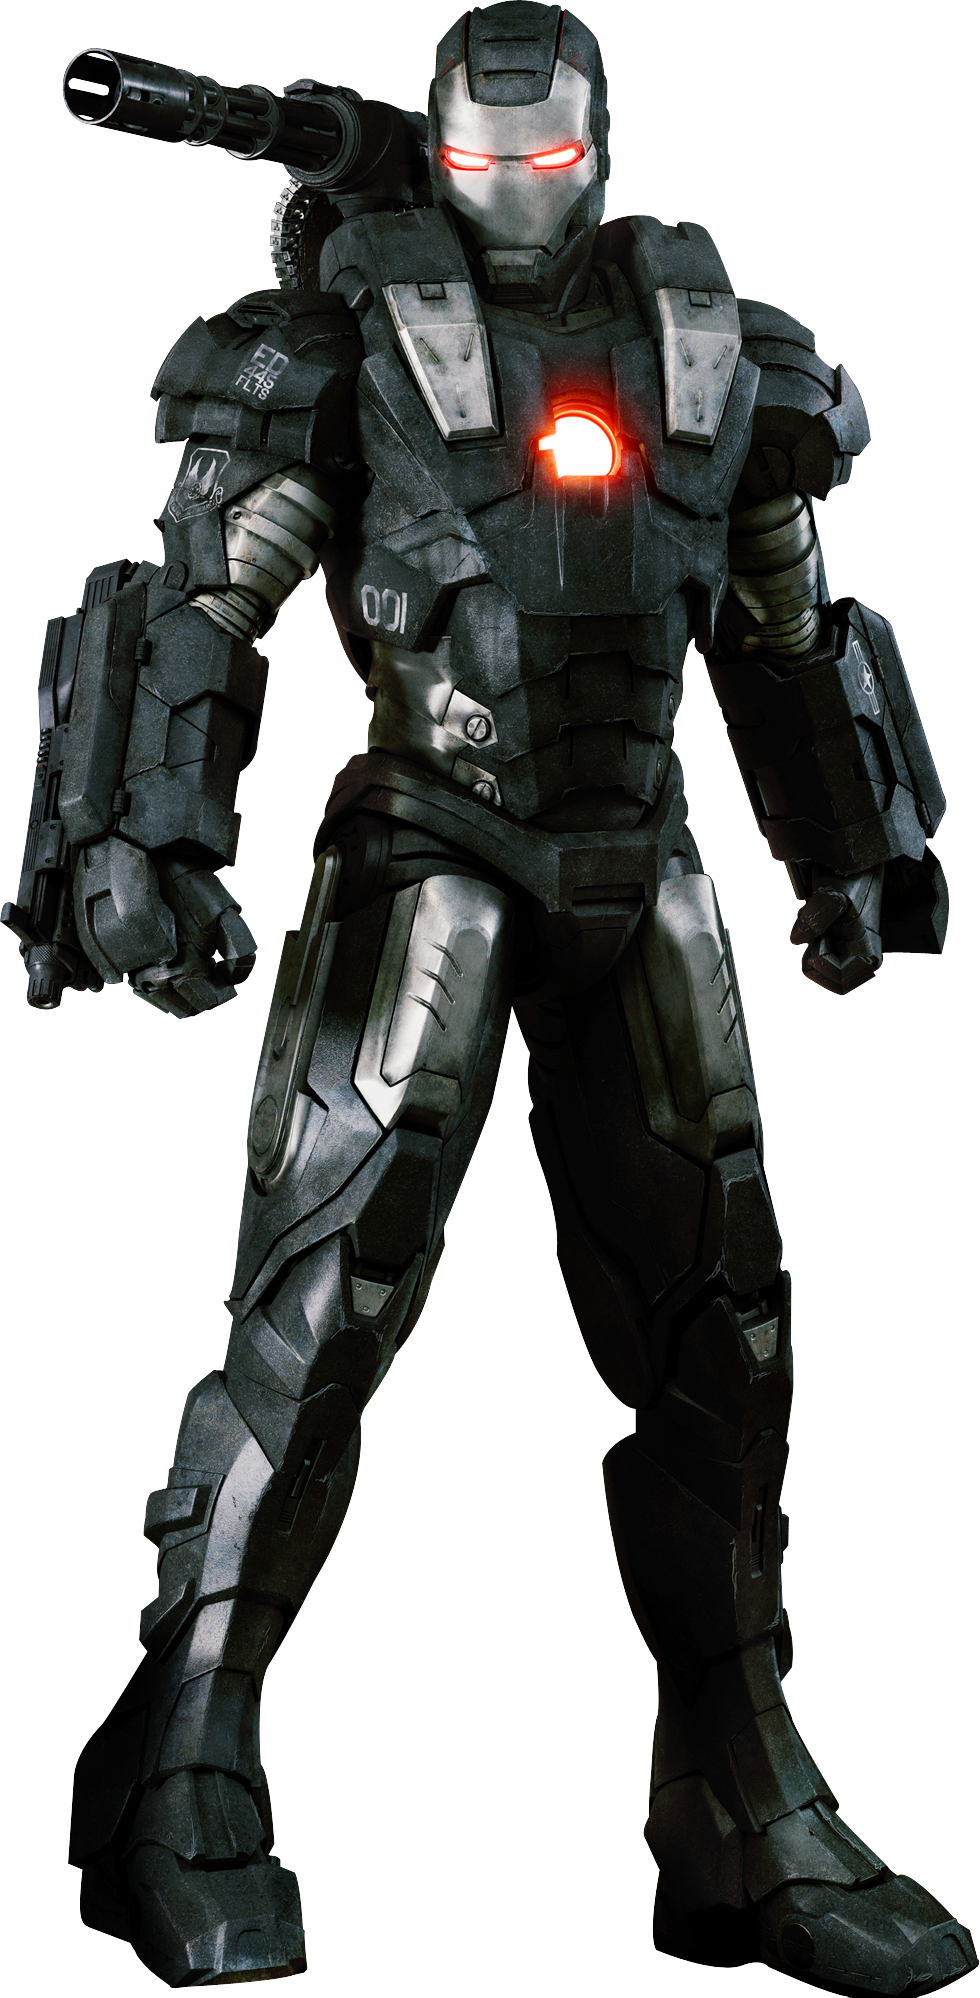 War Machine Mark I costume suit armor design